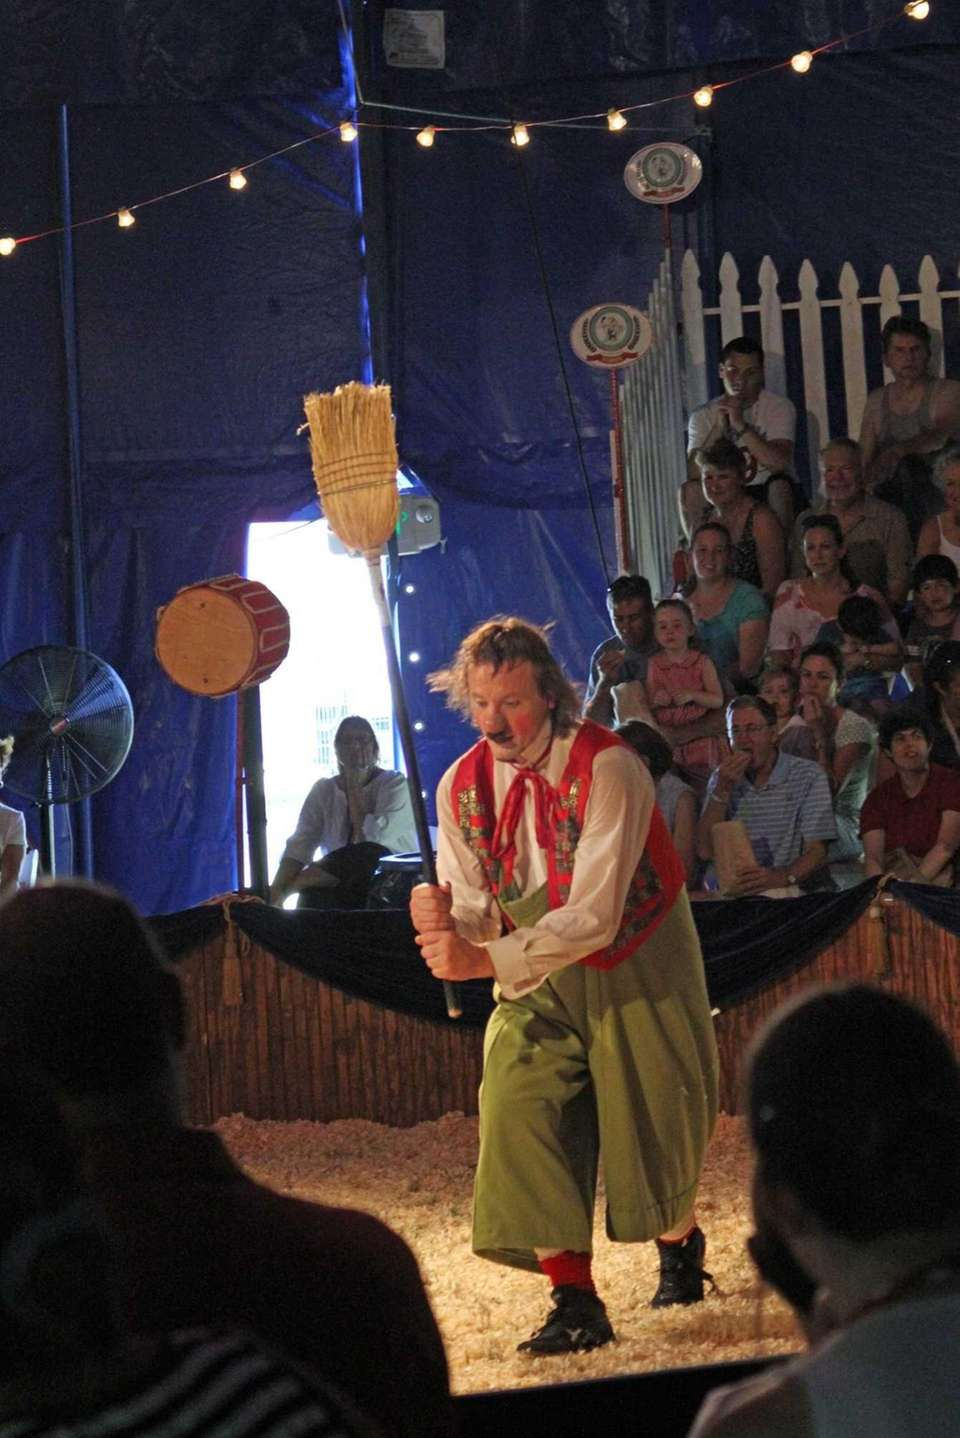 Nino the Clown entertains an audience during a